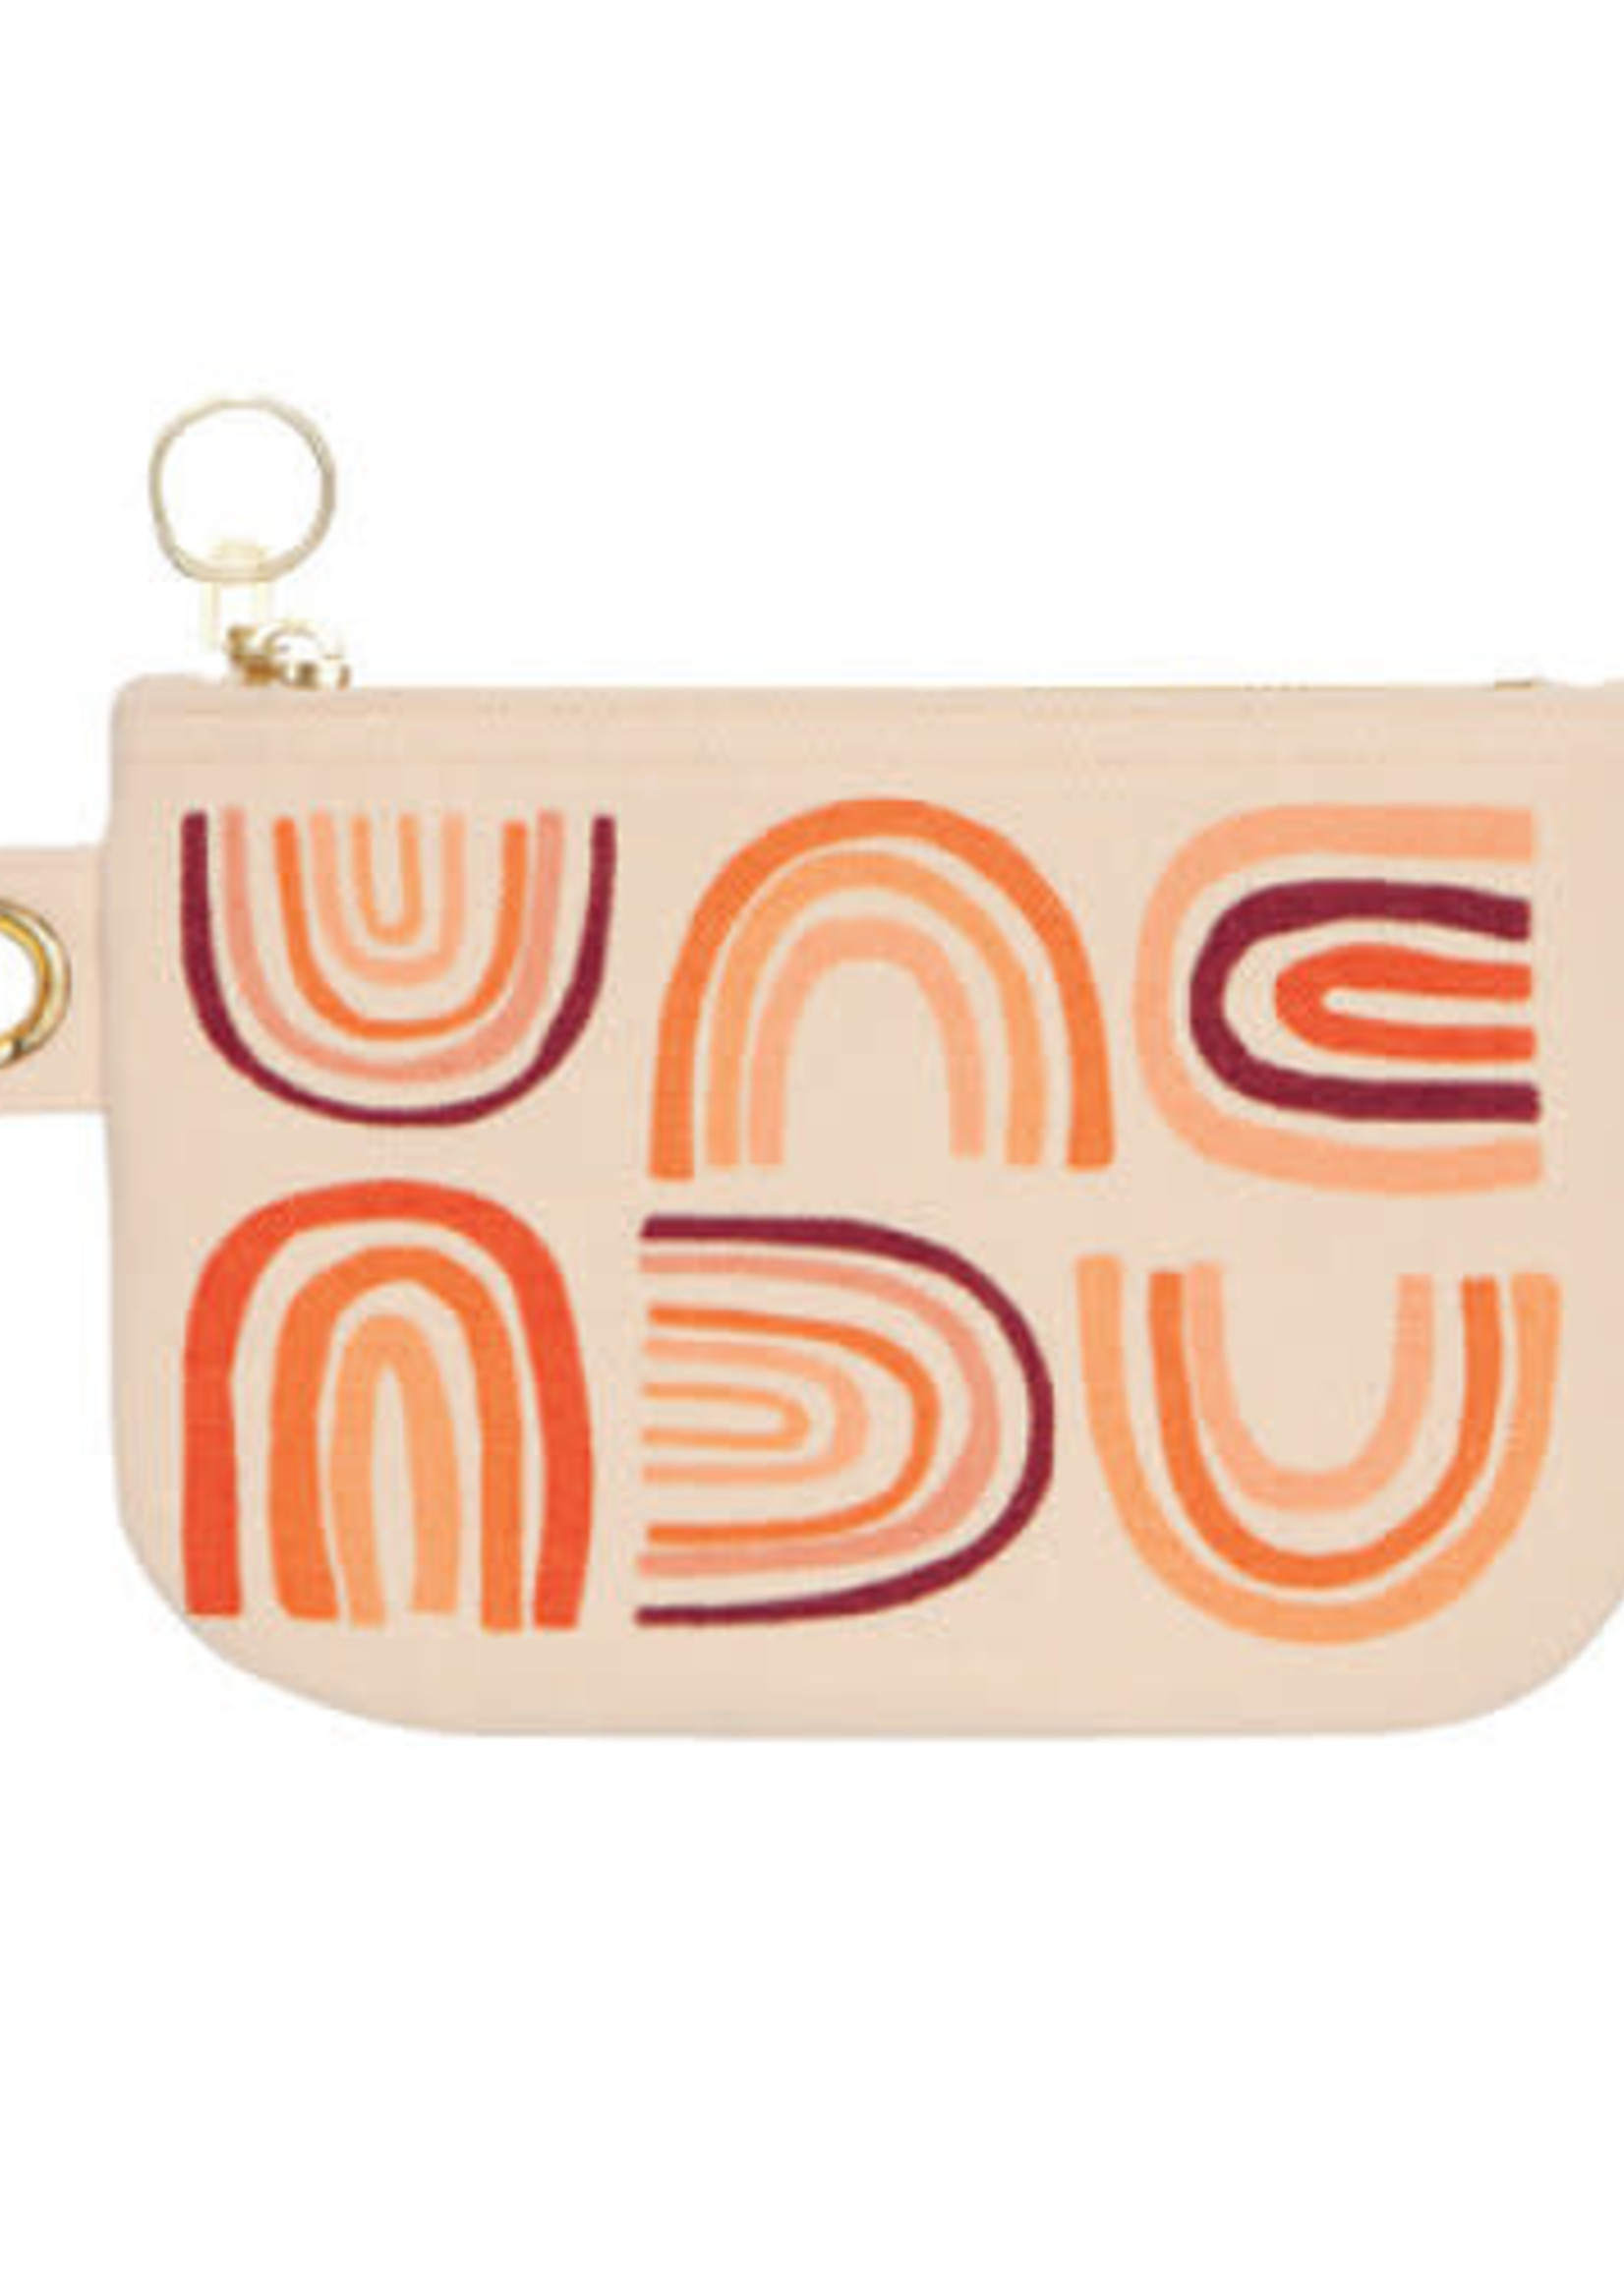 NOW DESIGNS NOW DESIGNS SMALL ZIPPER POUCH - SOLSTICE